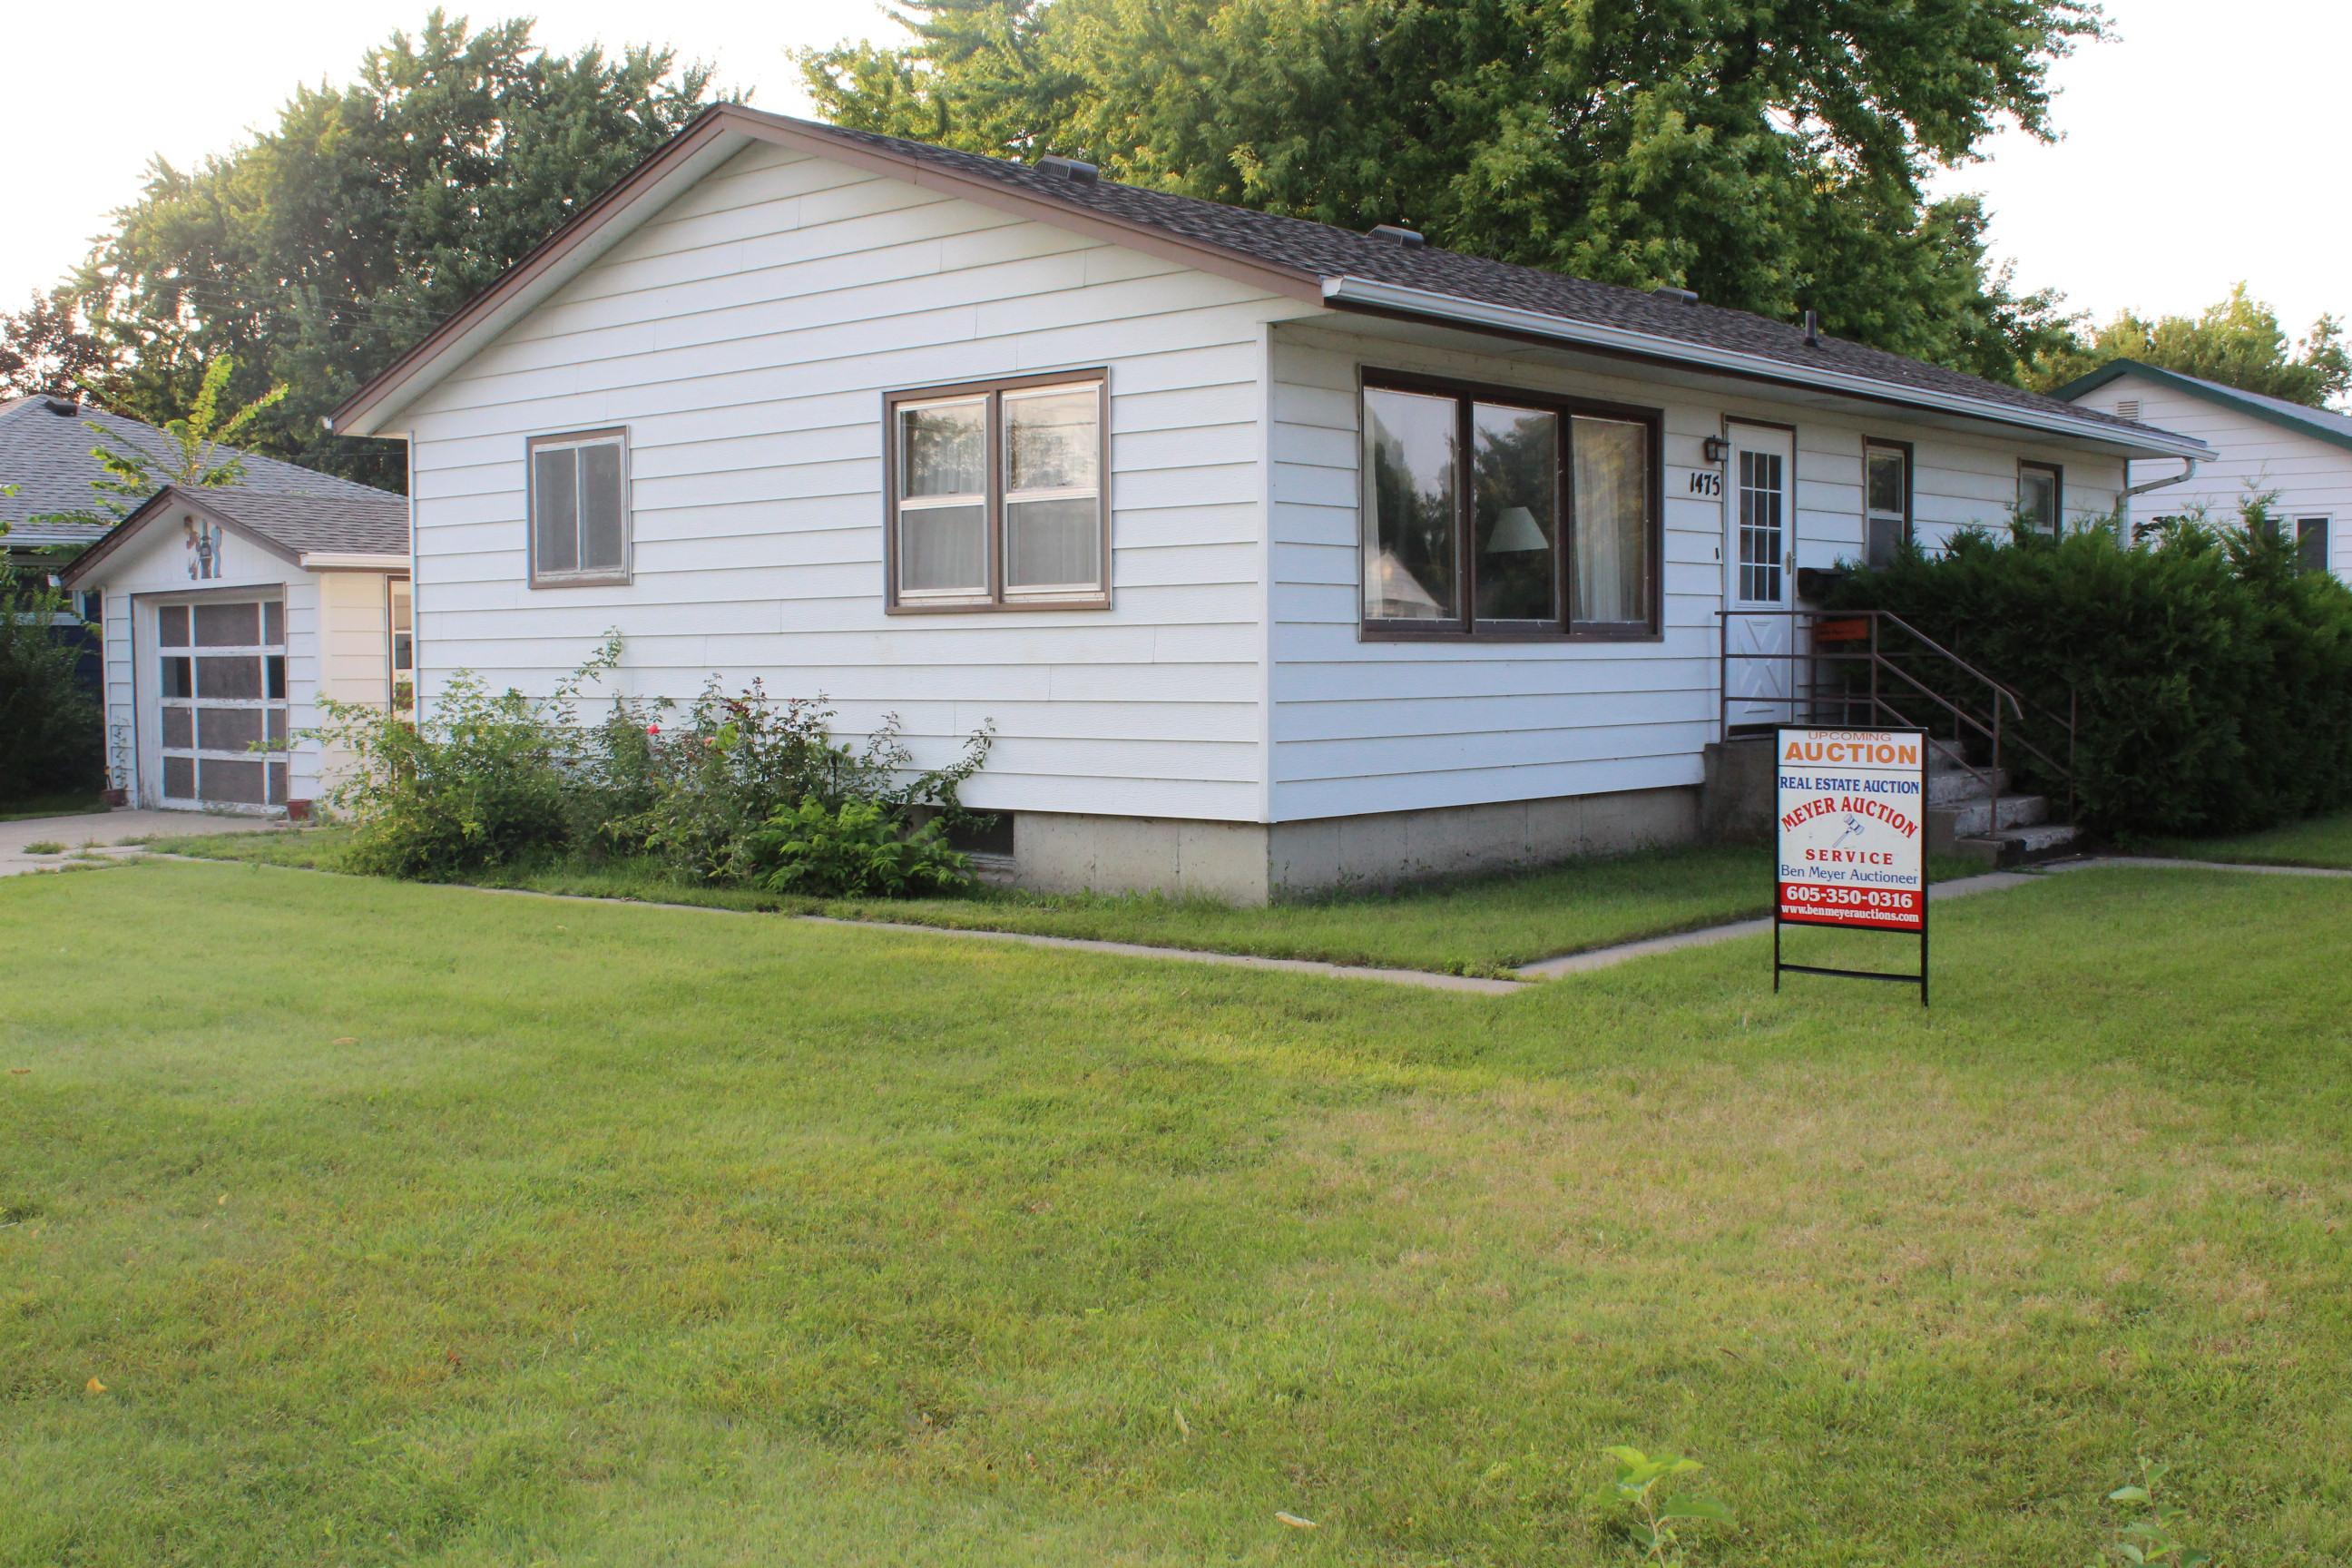 9/10 House and Live Auction 1475 Utah Ave SE, Huron